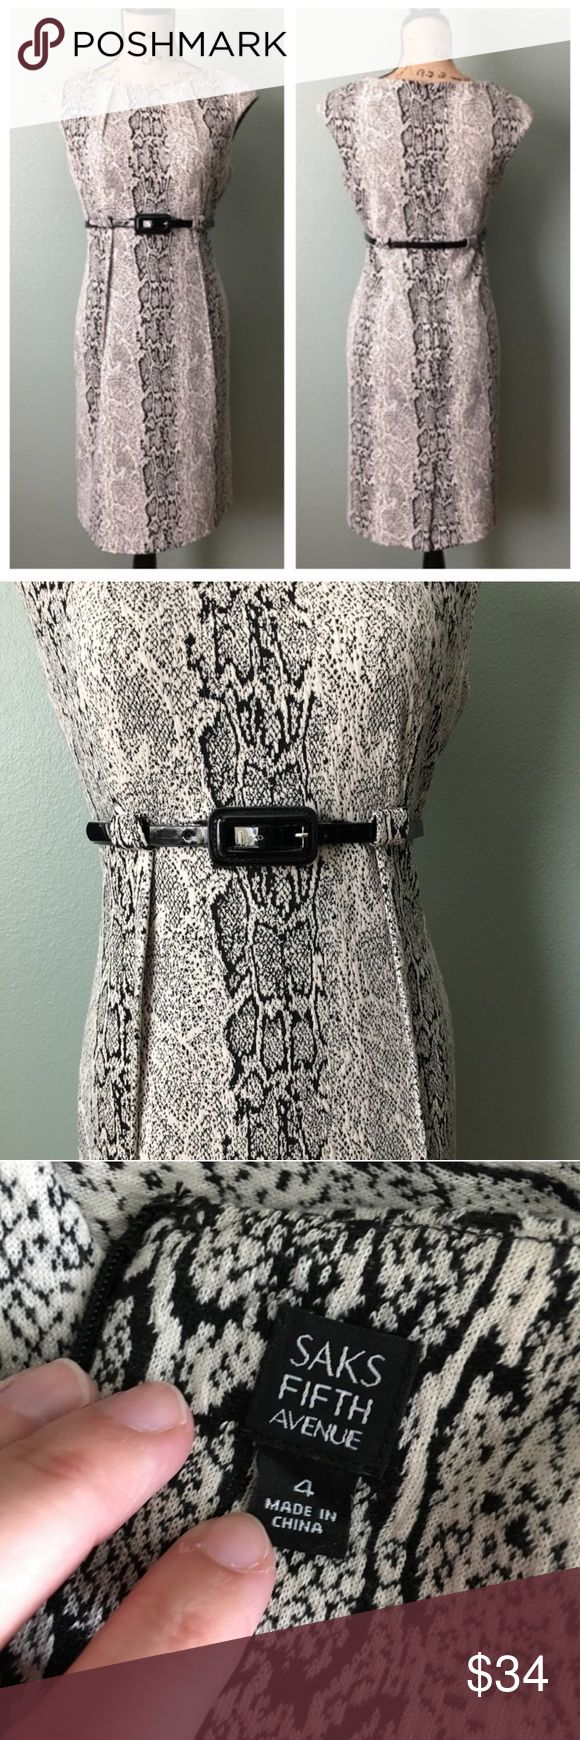 """Saks Fifth Avenue size 4 belted snake print dress! Saks Fifth Avenue size 4 belted snake print dress! Excellent condition. Belt included; belt has small signs of wear around the hole it was used on. Pleated neckline. Thicker fabric. Unlined. Cap sleeves. Approximate flat measurements: bust 17"""", waist 14.5"""", hips 18.75"""", length 36.5"""". I don't trade. Reasonable offers welcome. Thanks! 😊 Saks Fifth Avenue Dresses"""